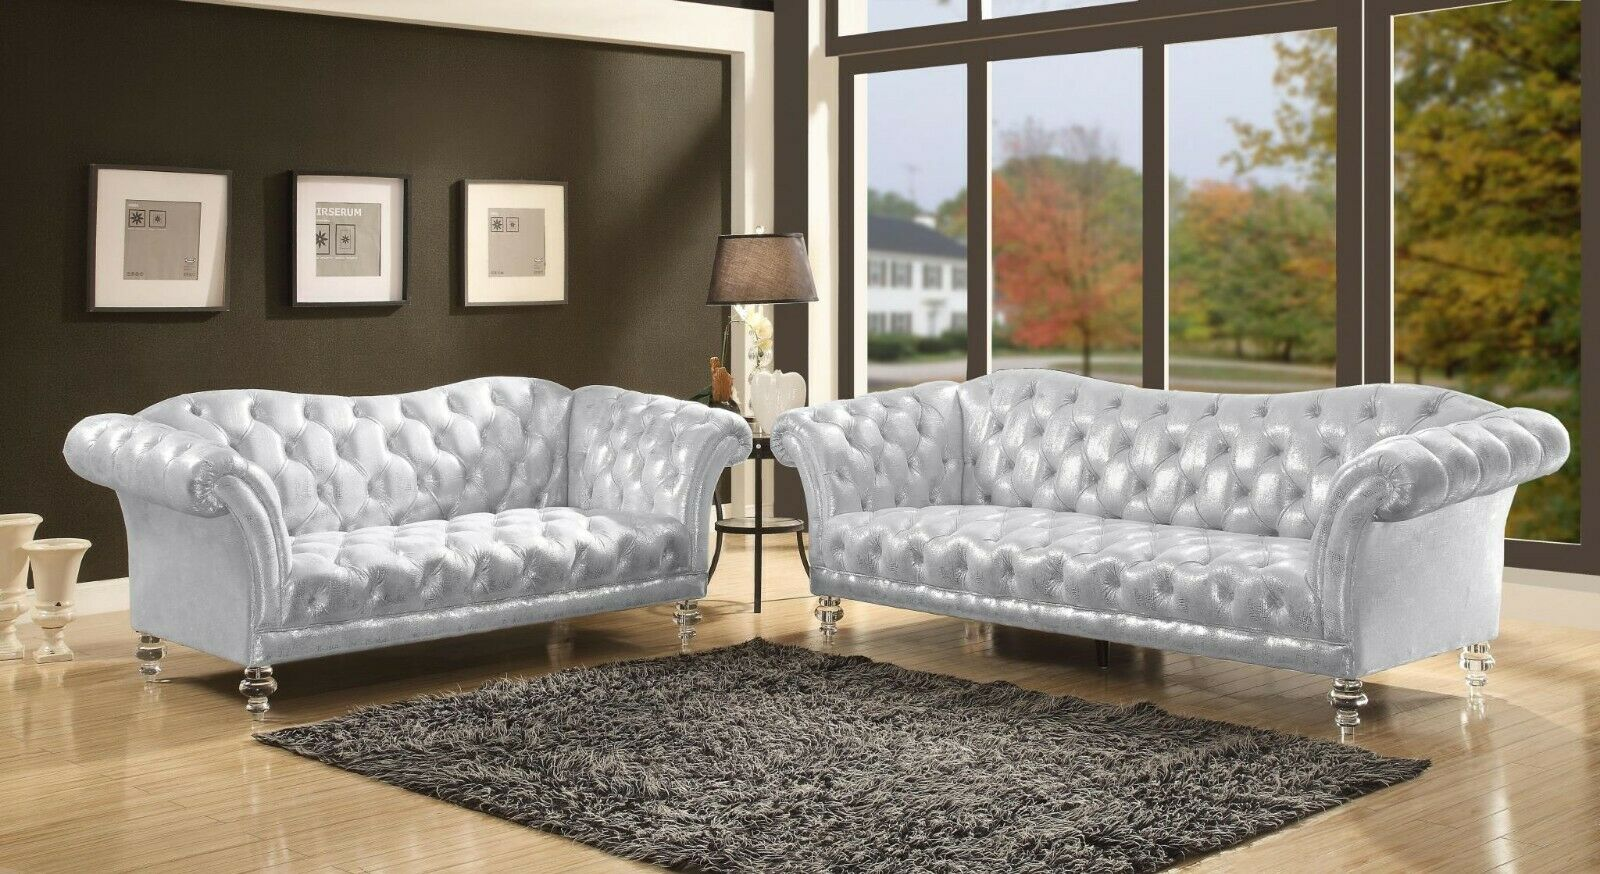 Acme Furniture Dixie Metallic Silver Fabric Sofa and Lovesea